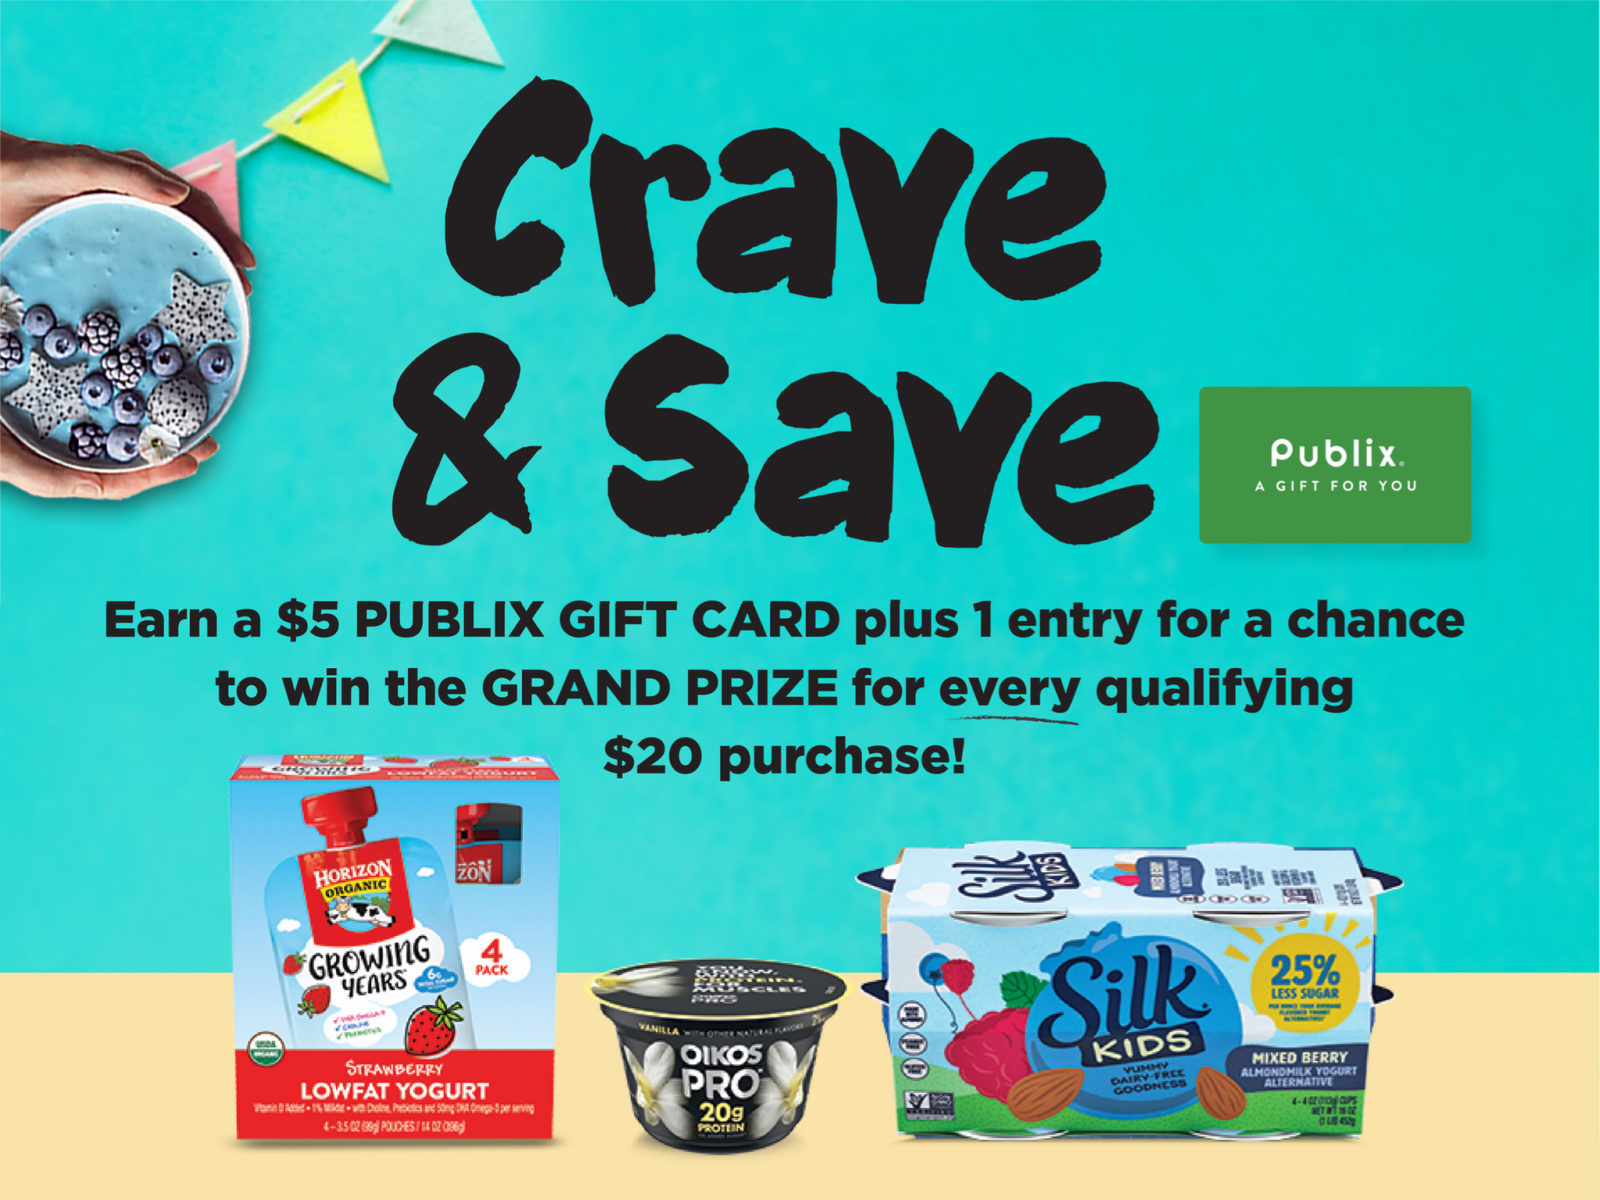 Great Week To Earn Gift Cards With The Crave & Save Program on I Heart Publix